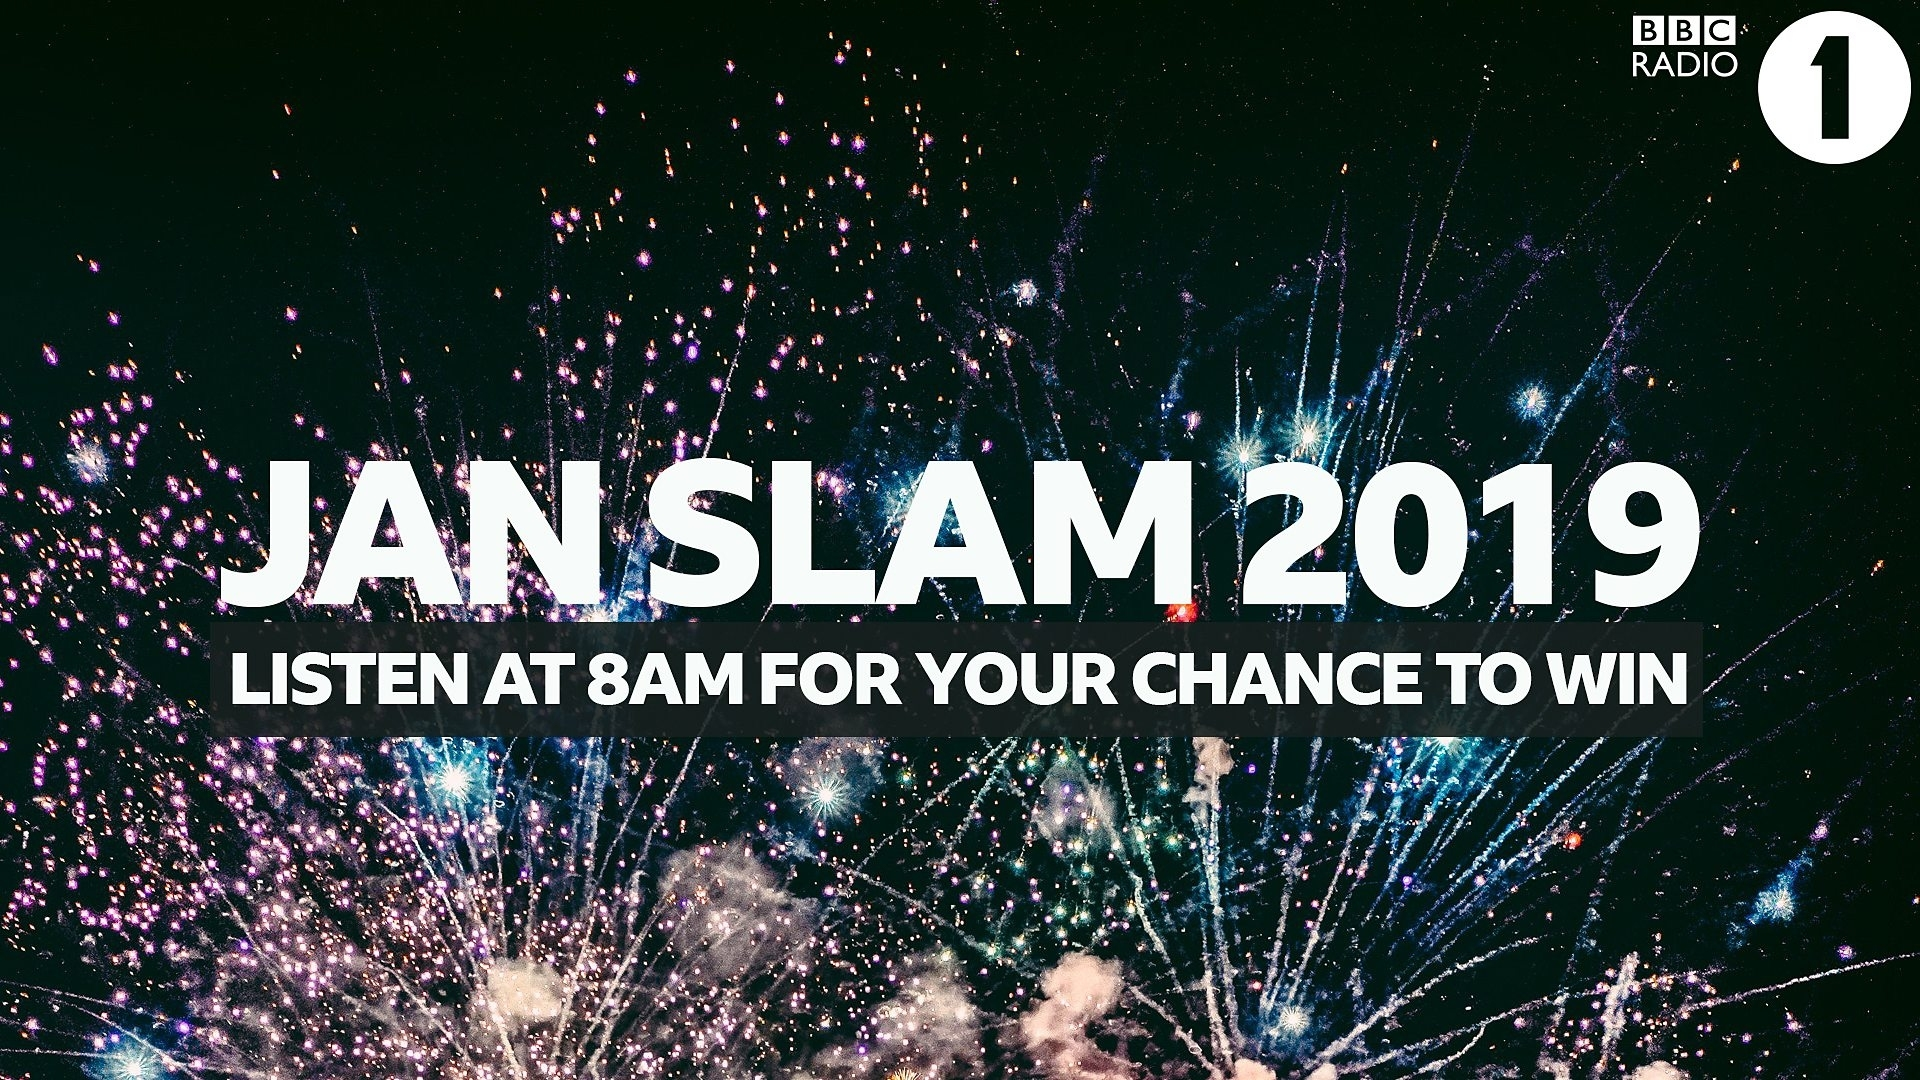 Bbc - Jan Slam Is Back For 2019 with regard to Bbc Super Bowl 2019